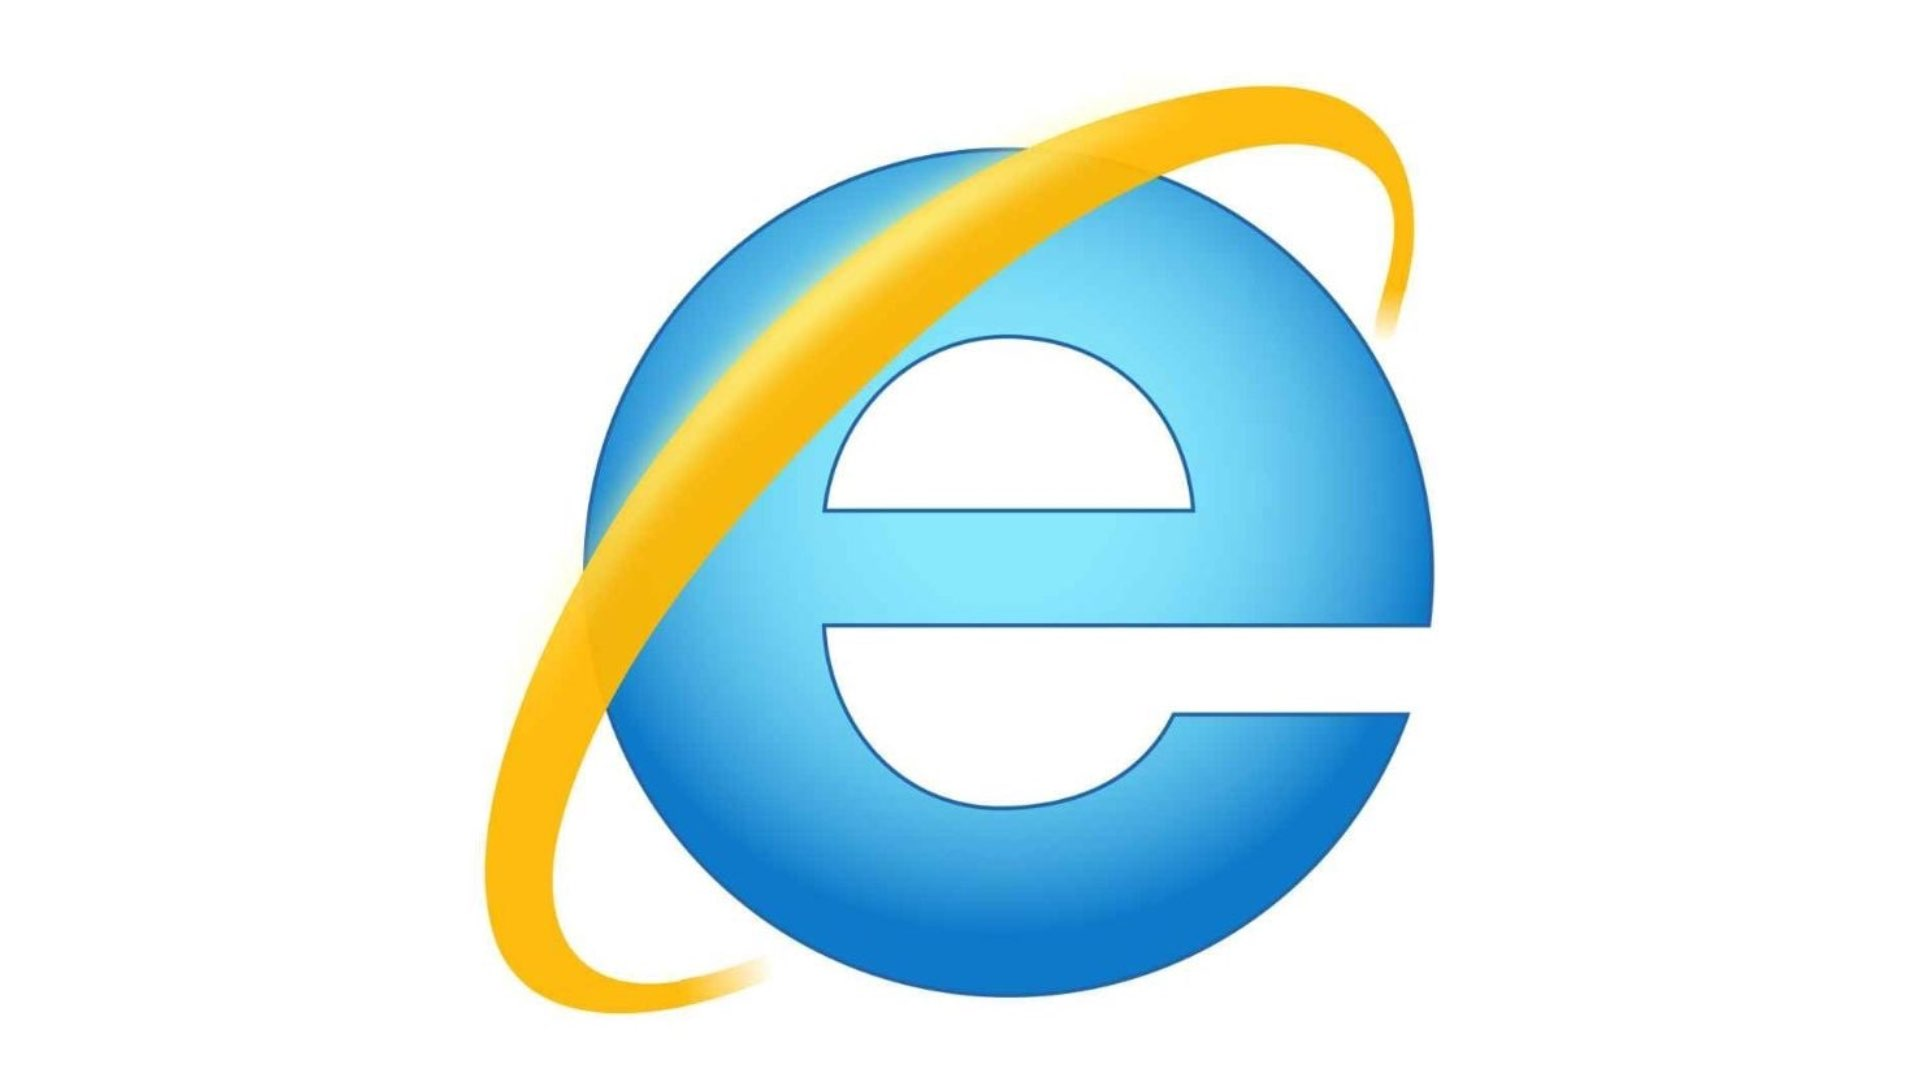 Microsoft will discontinue Internet Explorer after 25 years of service